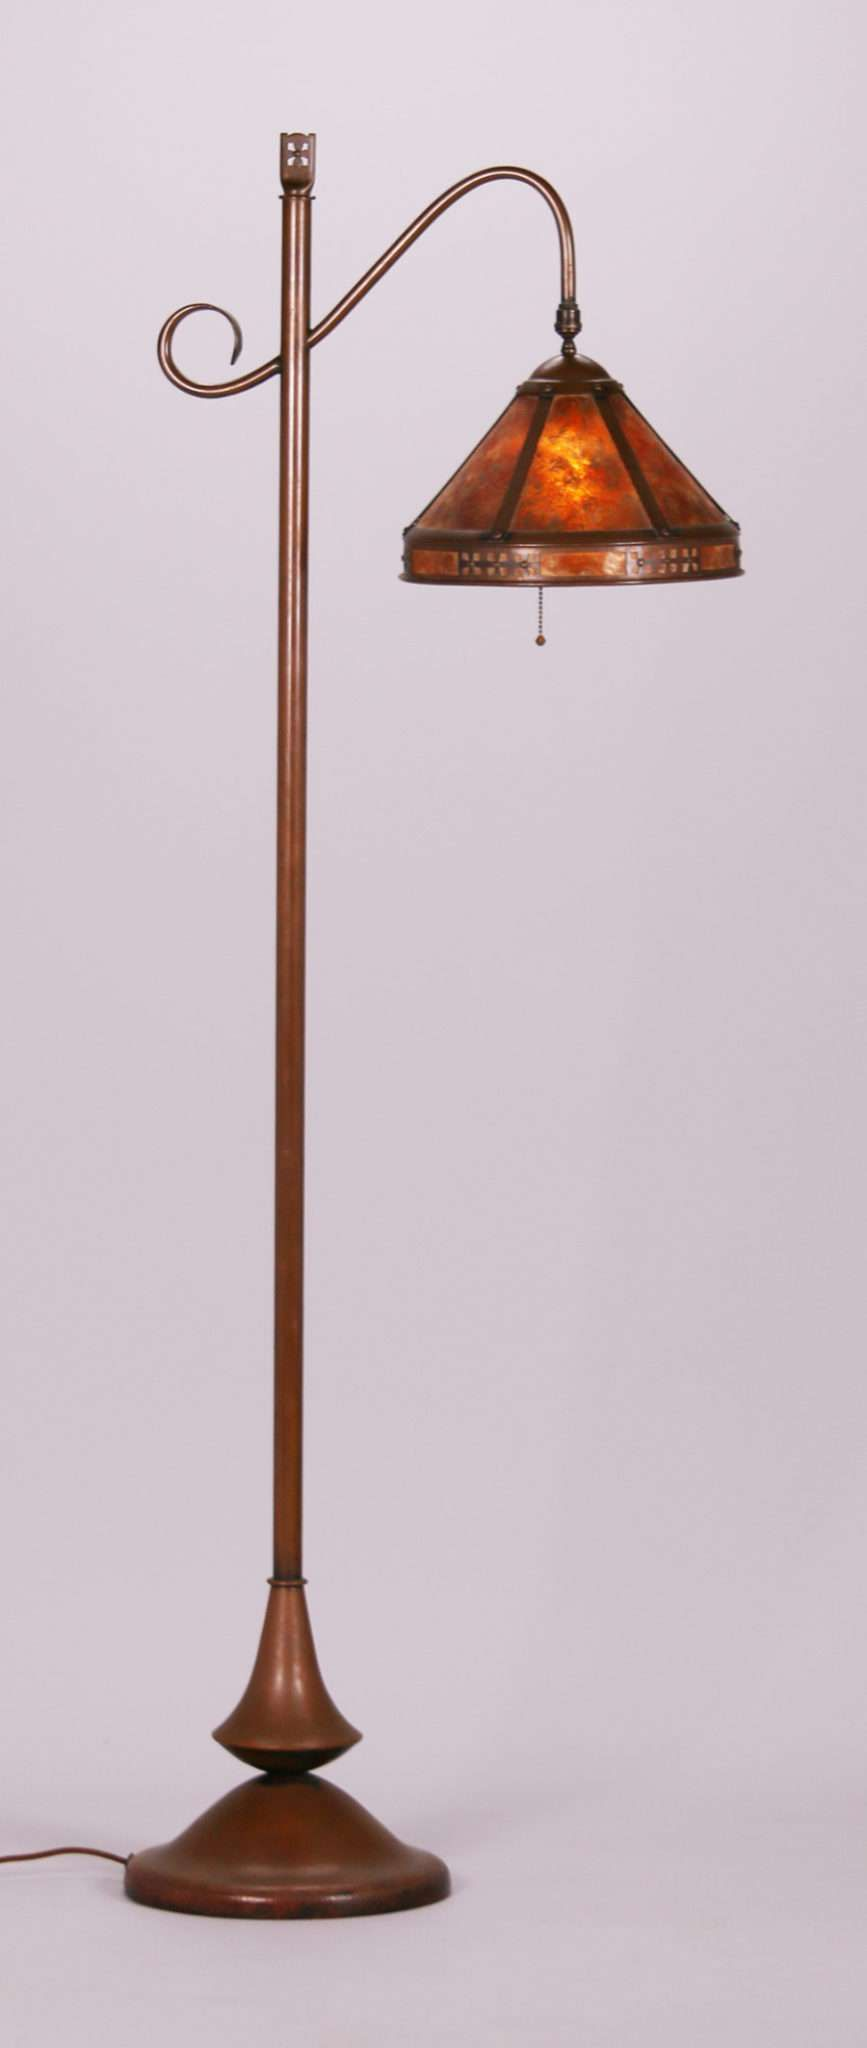 Rare important dirk van erp hammered copper and mica floor lamp rare important dirk van erp hammered copper and mica floor lamp with repeating dutch aloadofball Image collections